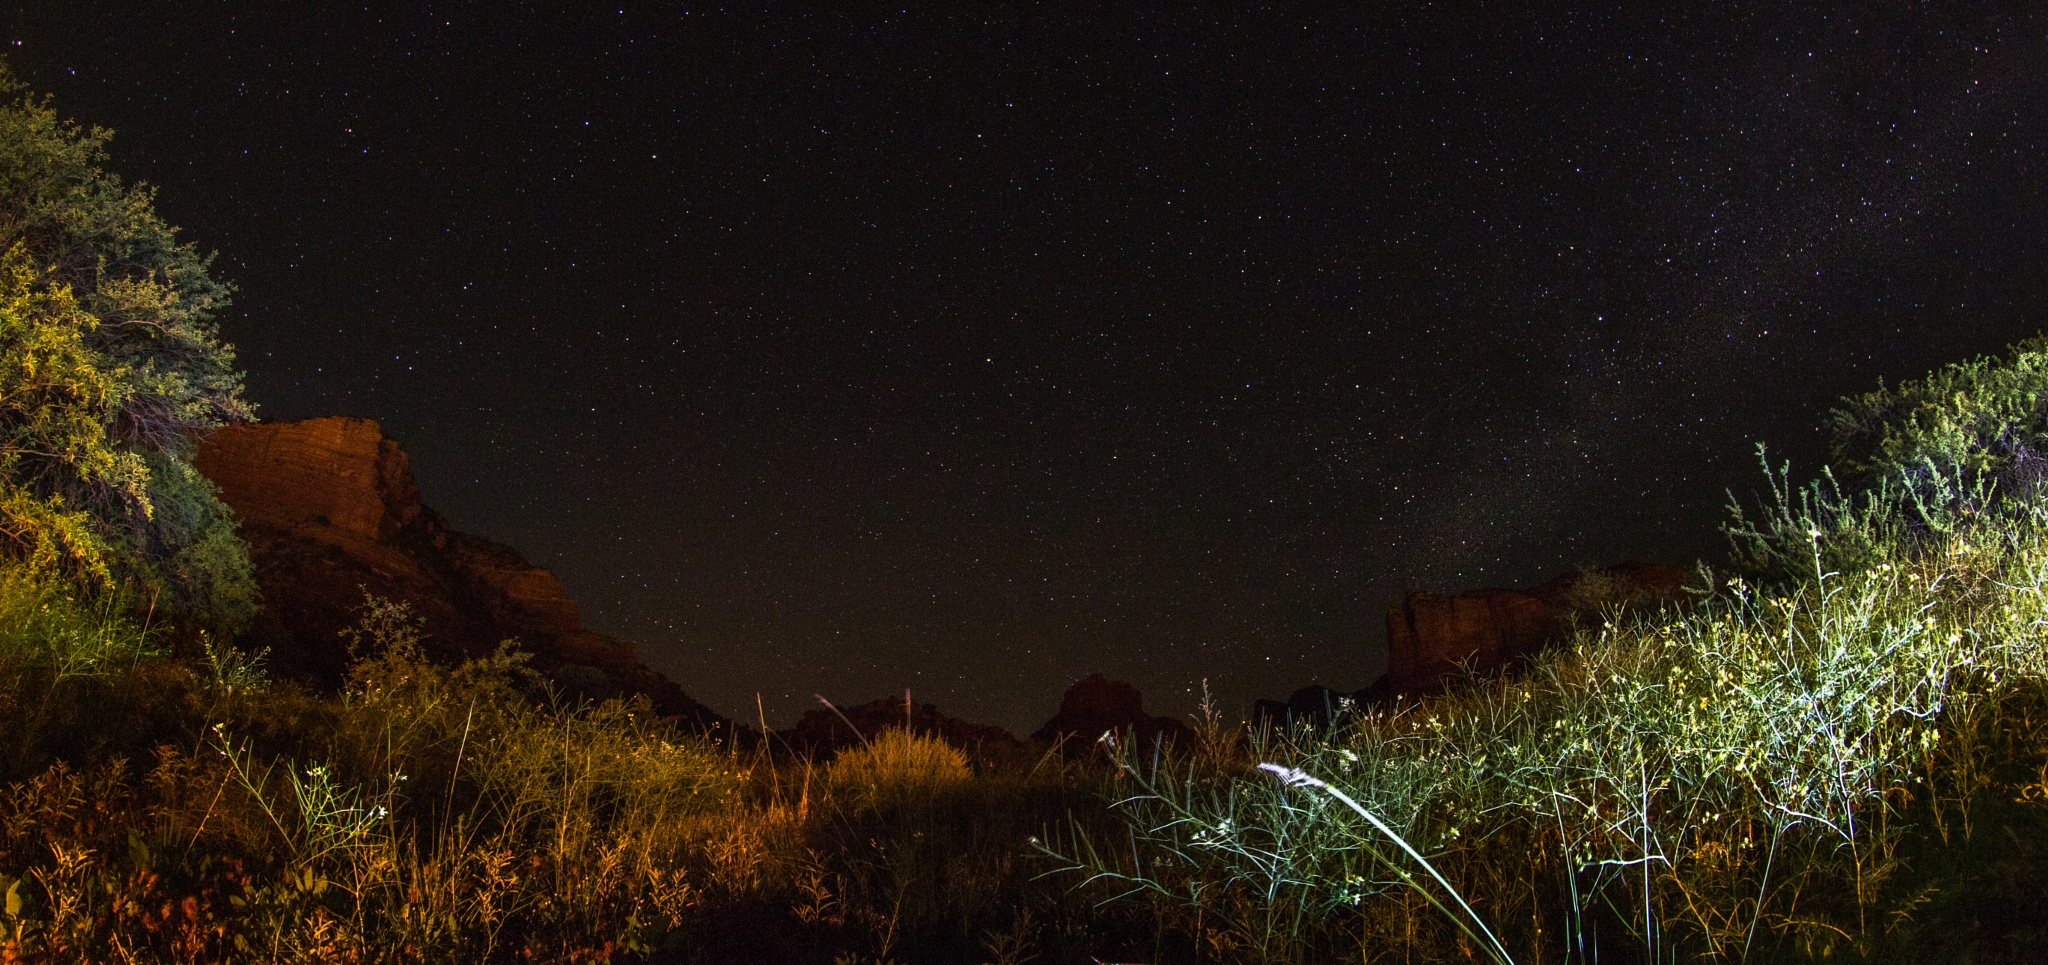 This one time I took a picture at night... by Noah Piche Smith